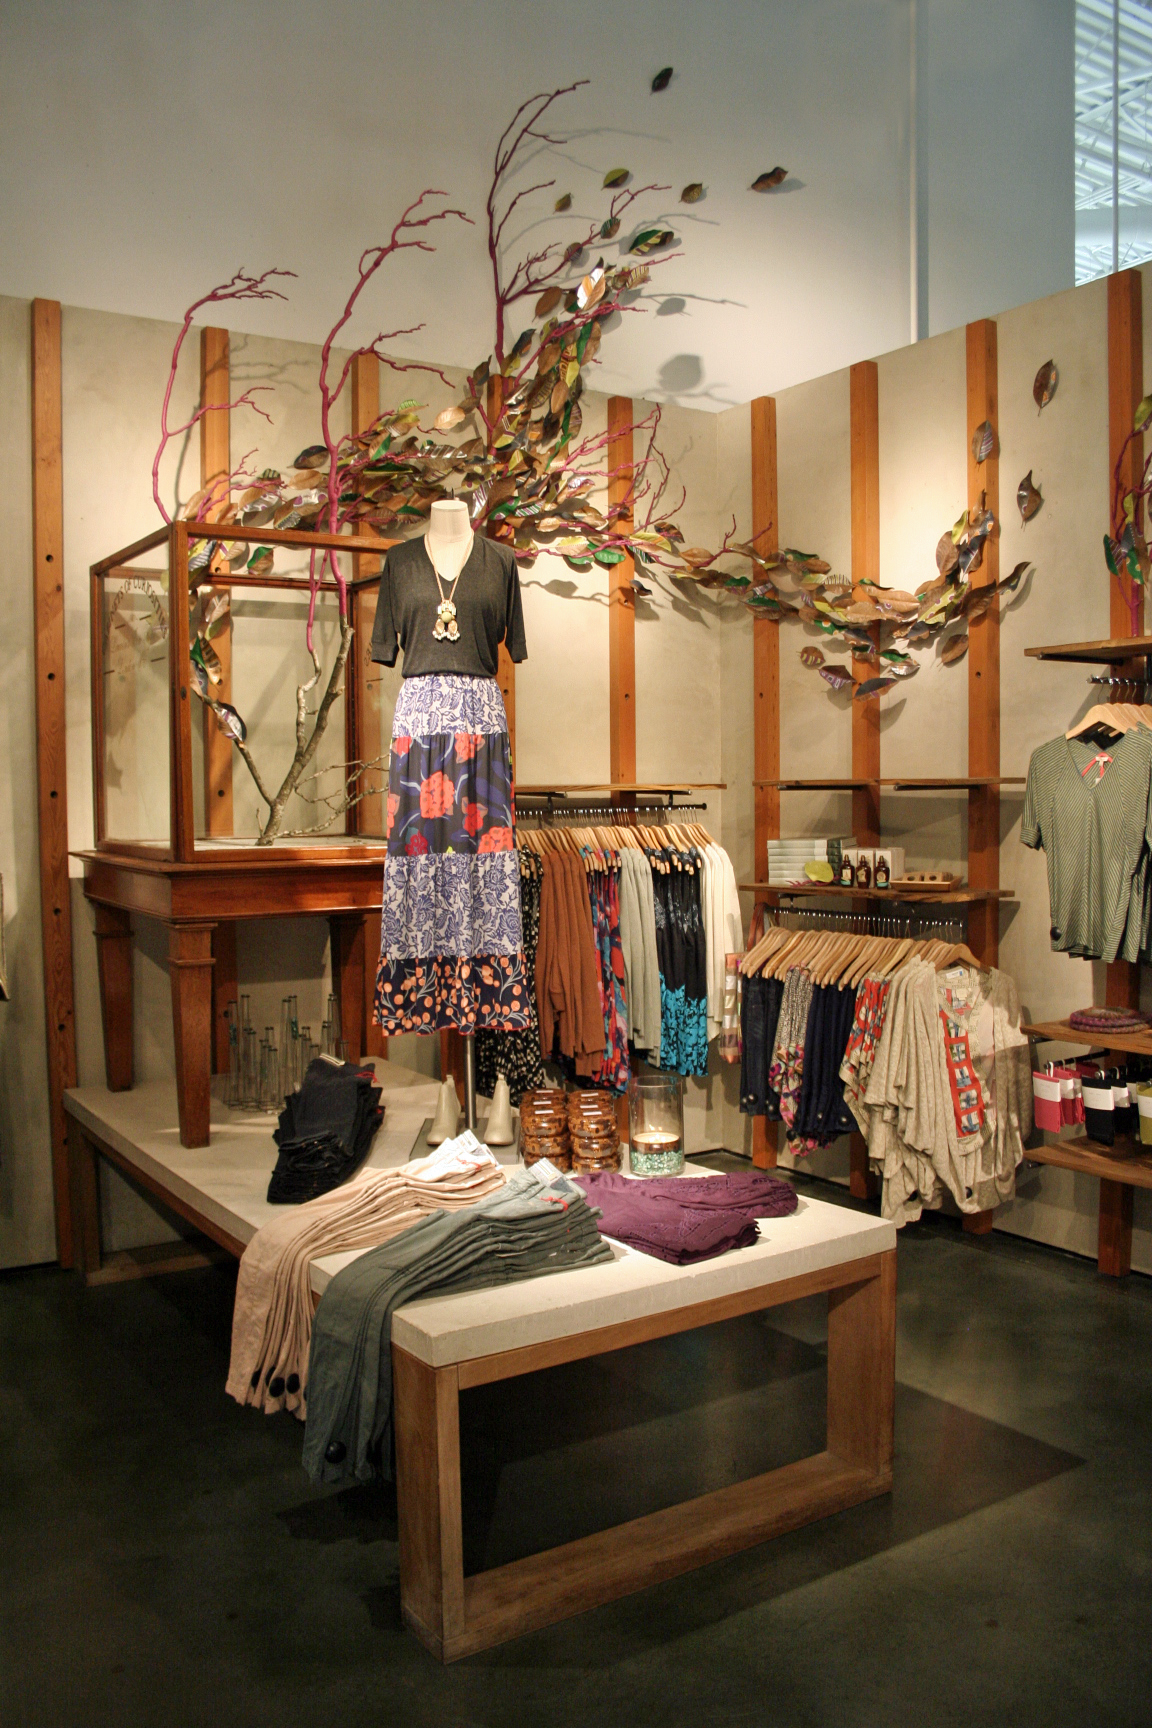 anthropologie display of painted leaves and found object